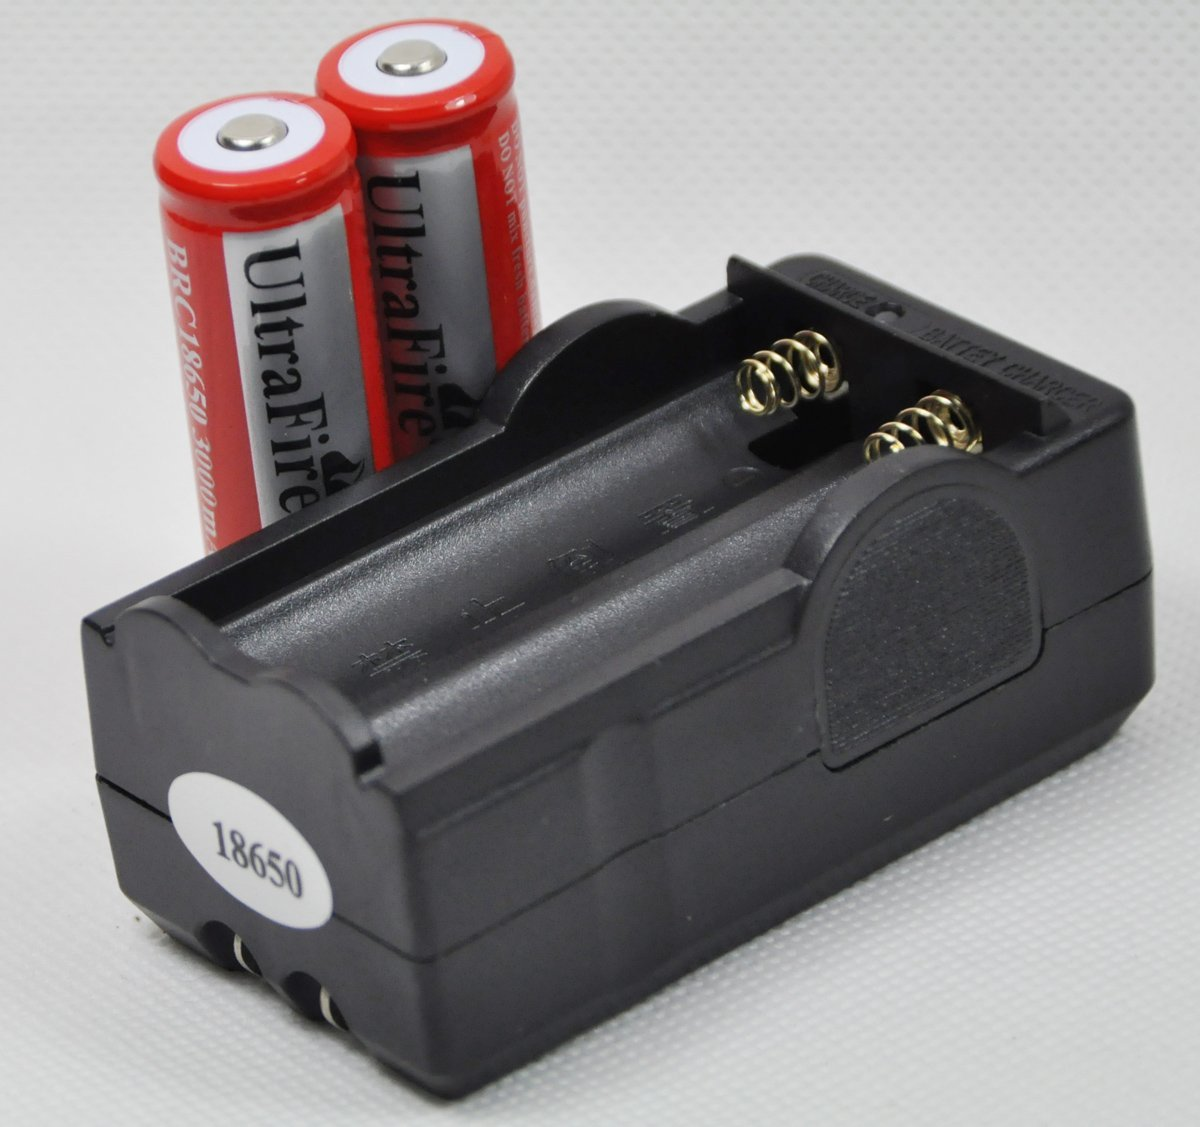 2 Ultrafire 18650 3000mah Li-Ion Rechargeable Protected Batteries + 1 Dual Smart Charger + FREE SHIPPING